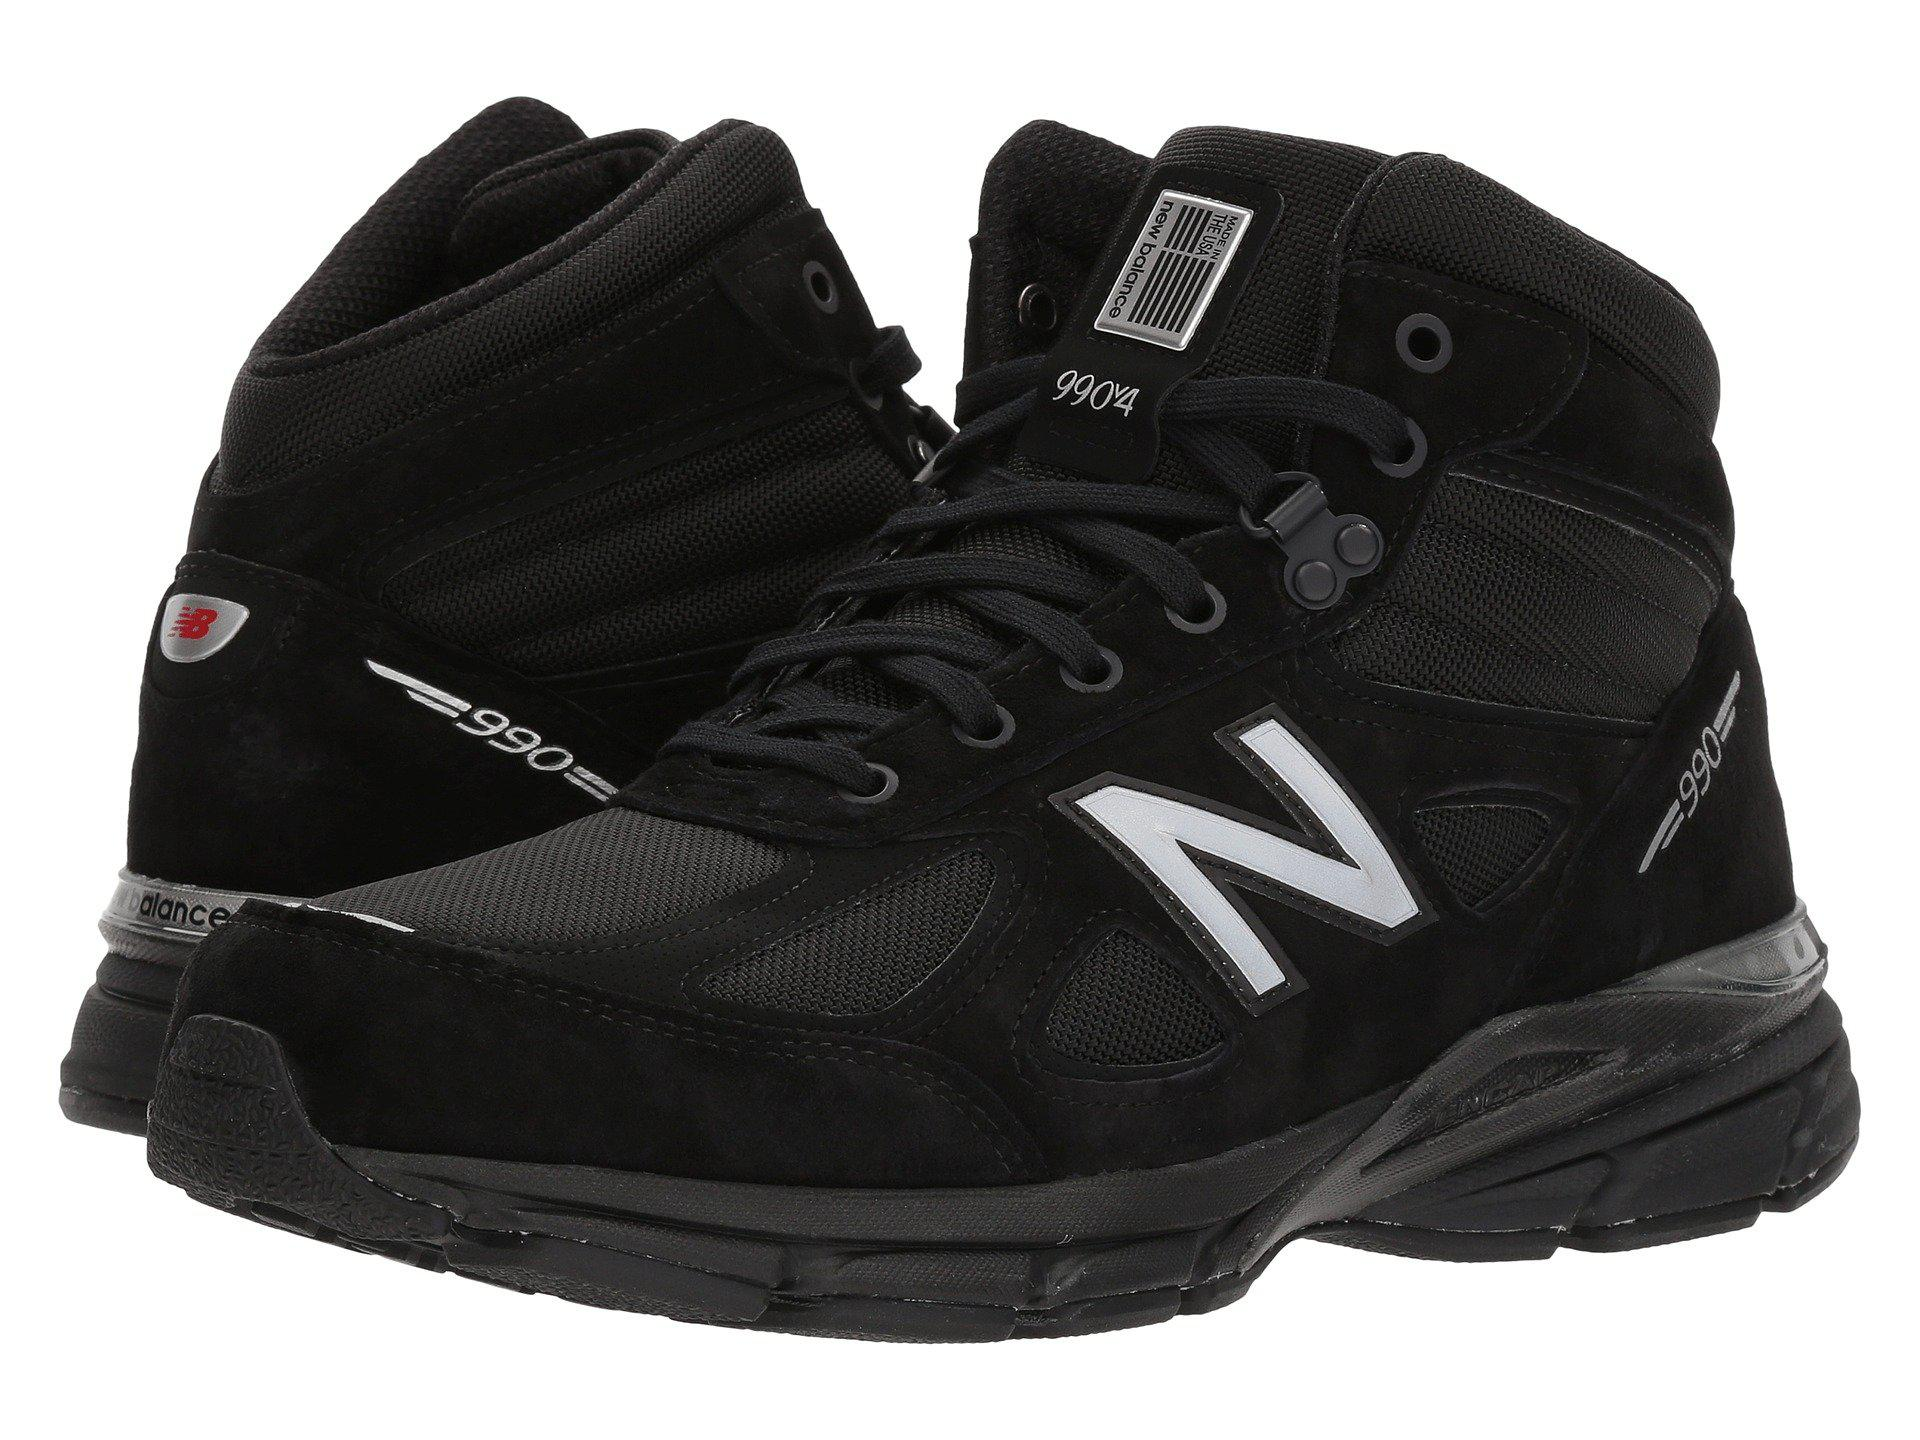 Lyst - New Balance 990v4 Boot (black grey) Men s Pull-on Boots in ... a8521d9741a22